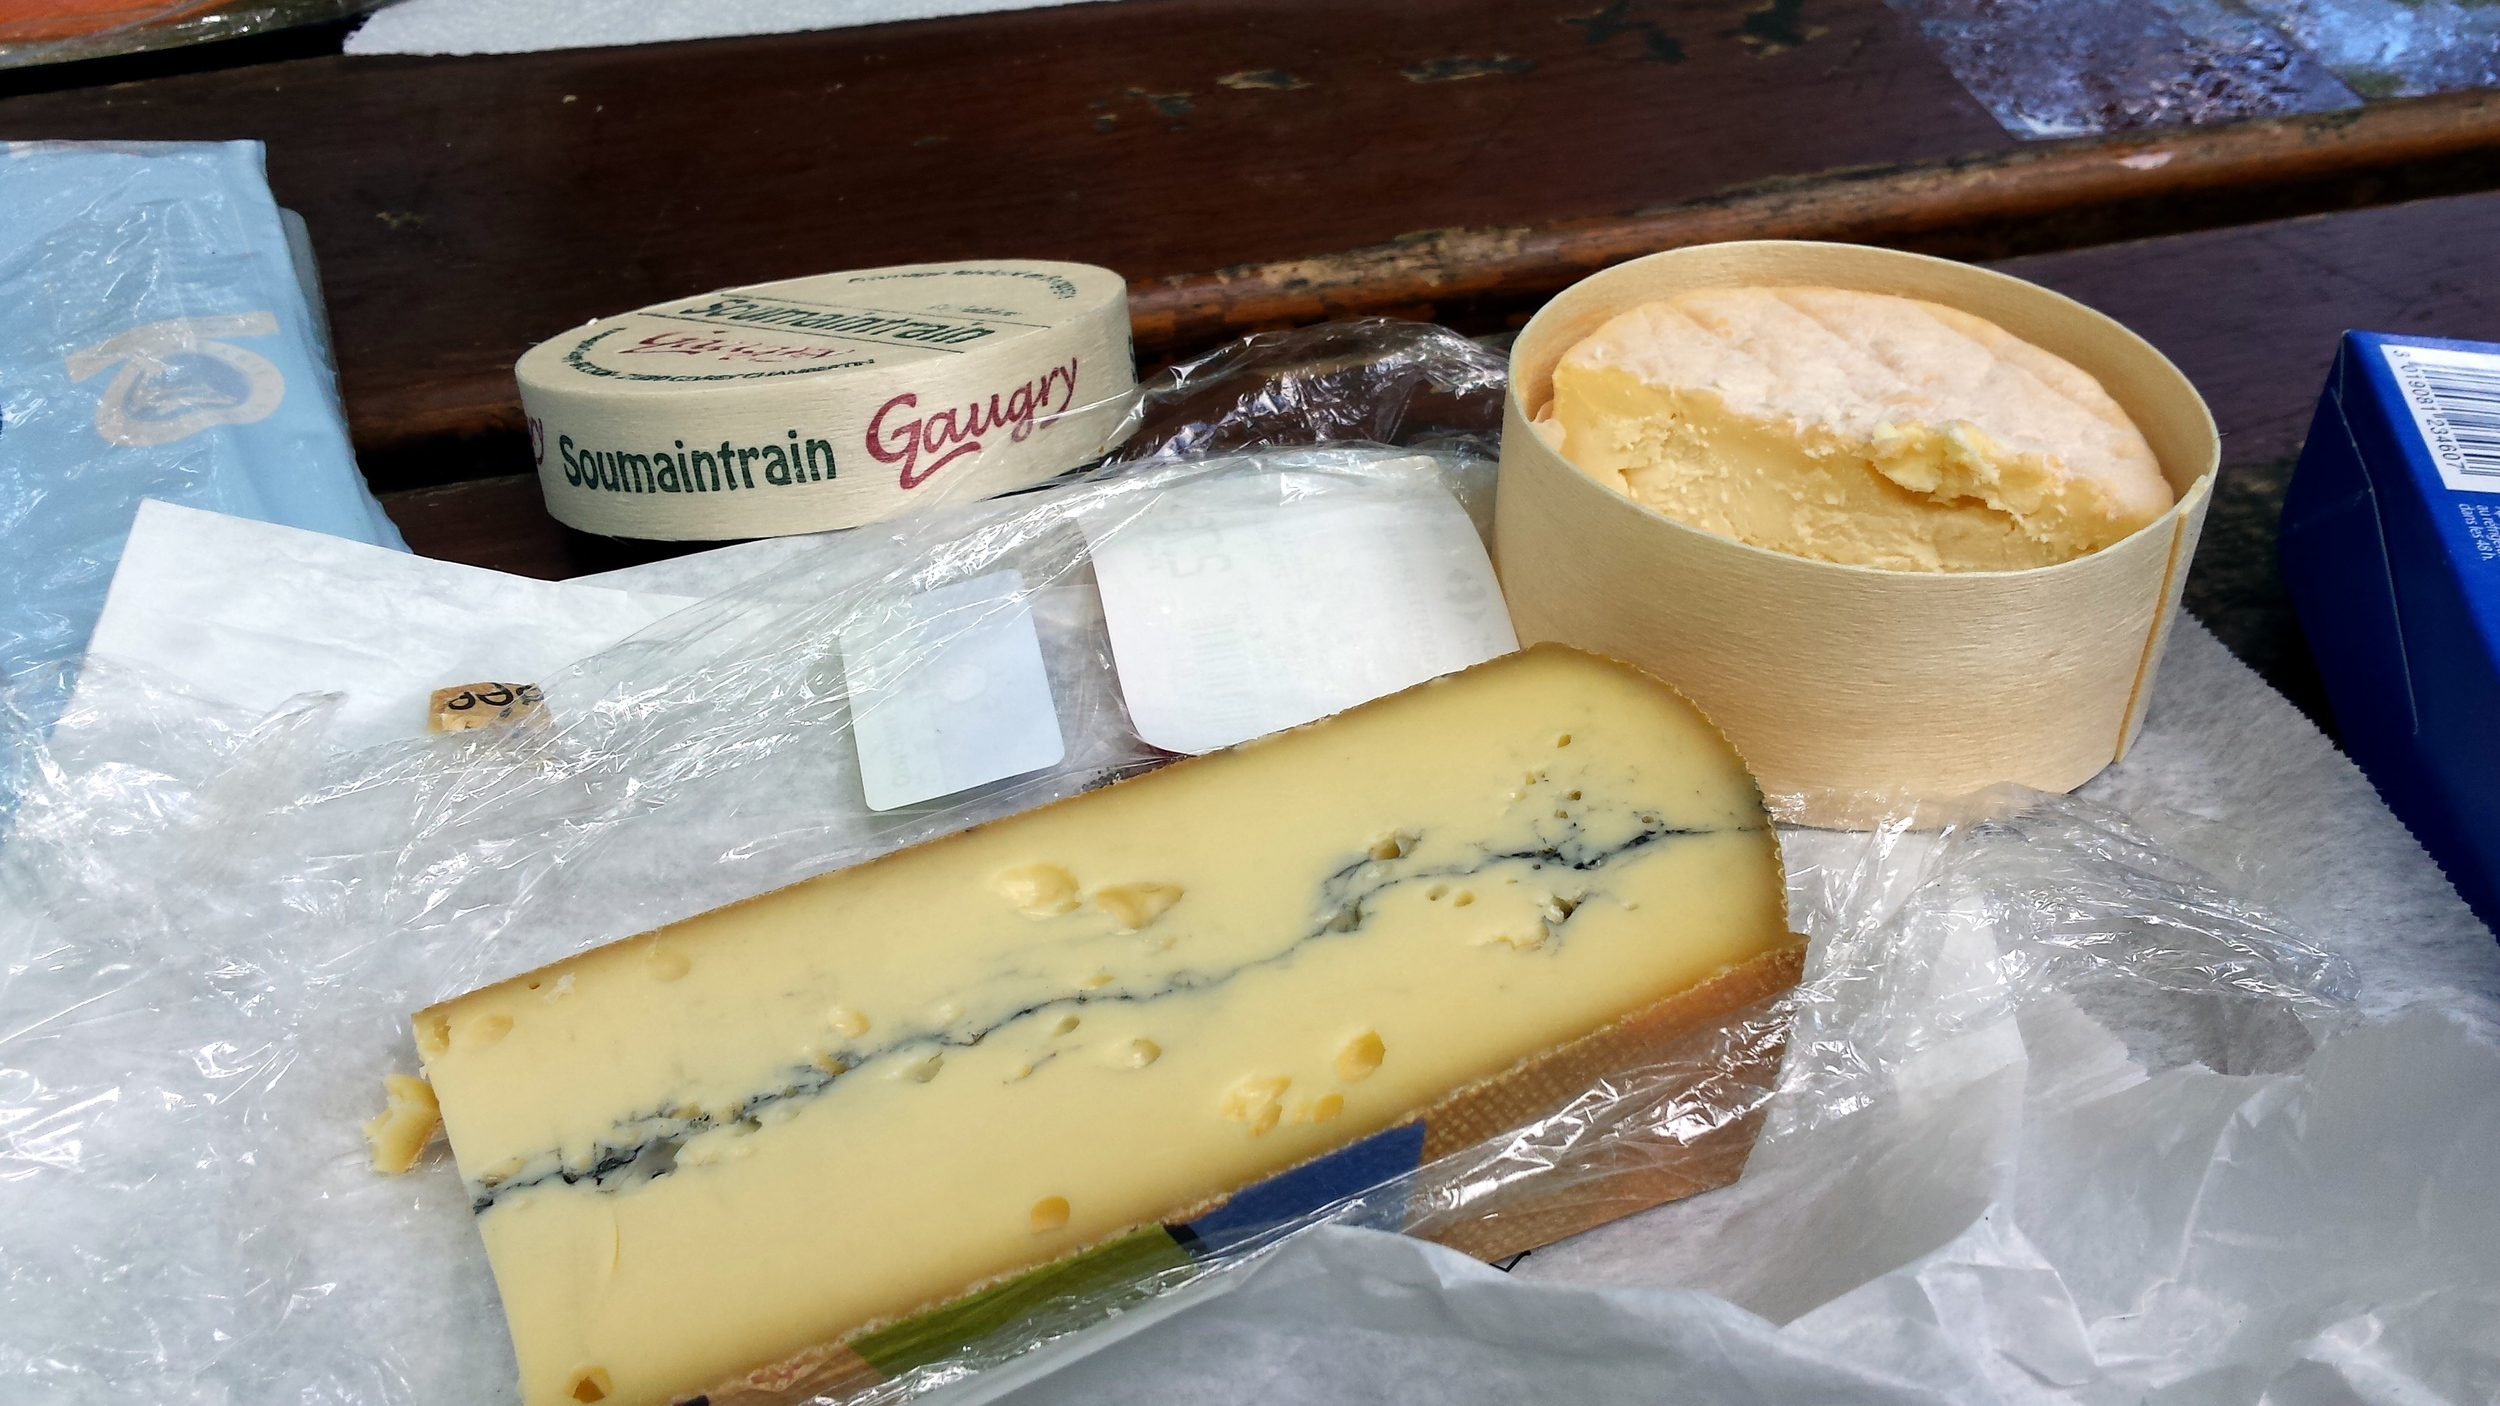 Soumaintrain  and  Morbier . It's supermarket cheese, but it was still pretty good.